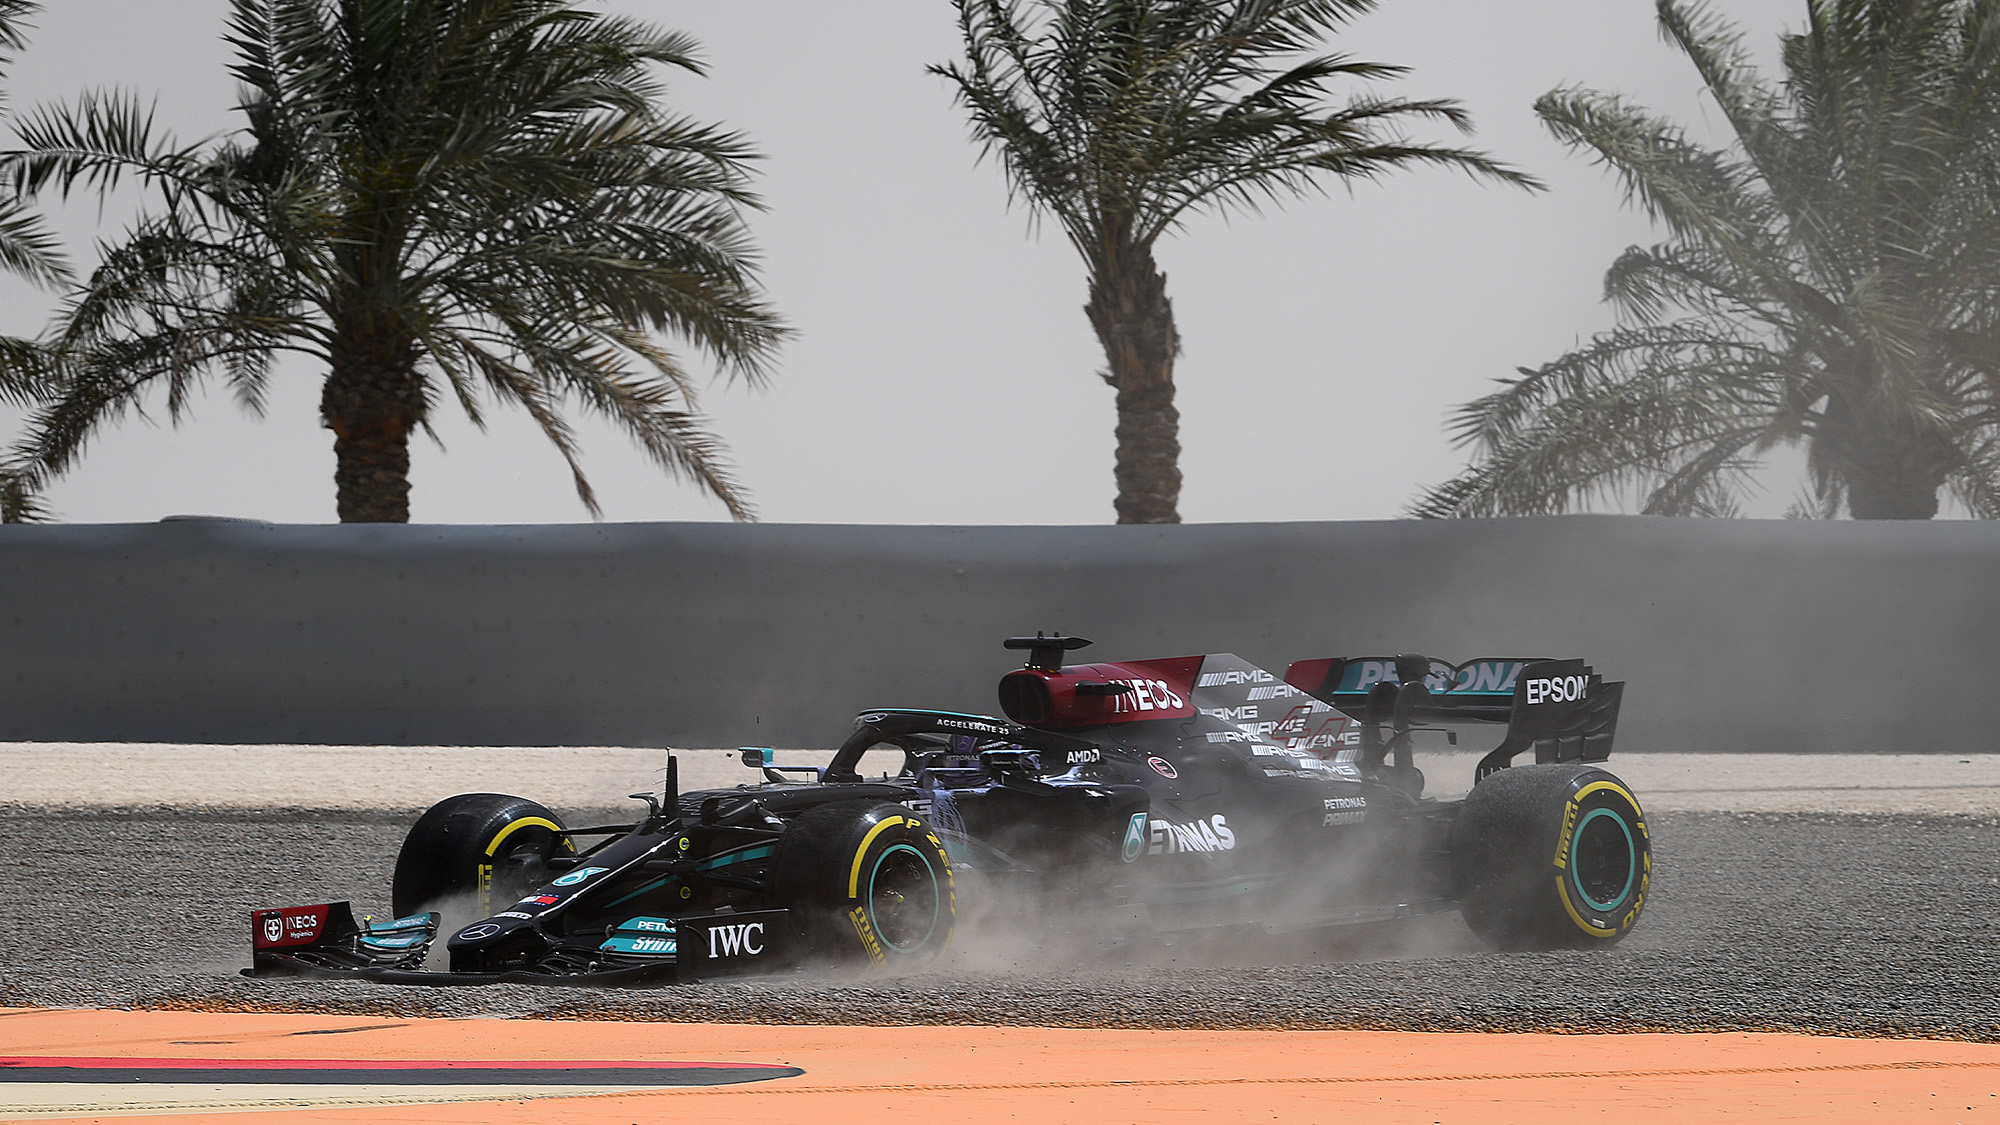 Lewis Hamilton spins of in 2021 F1 testing